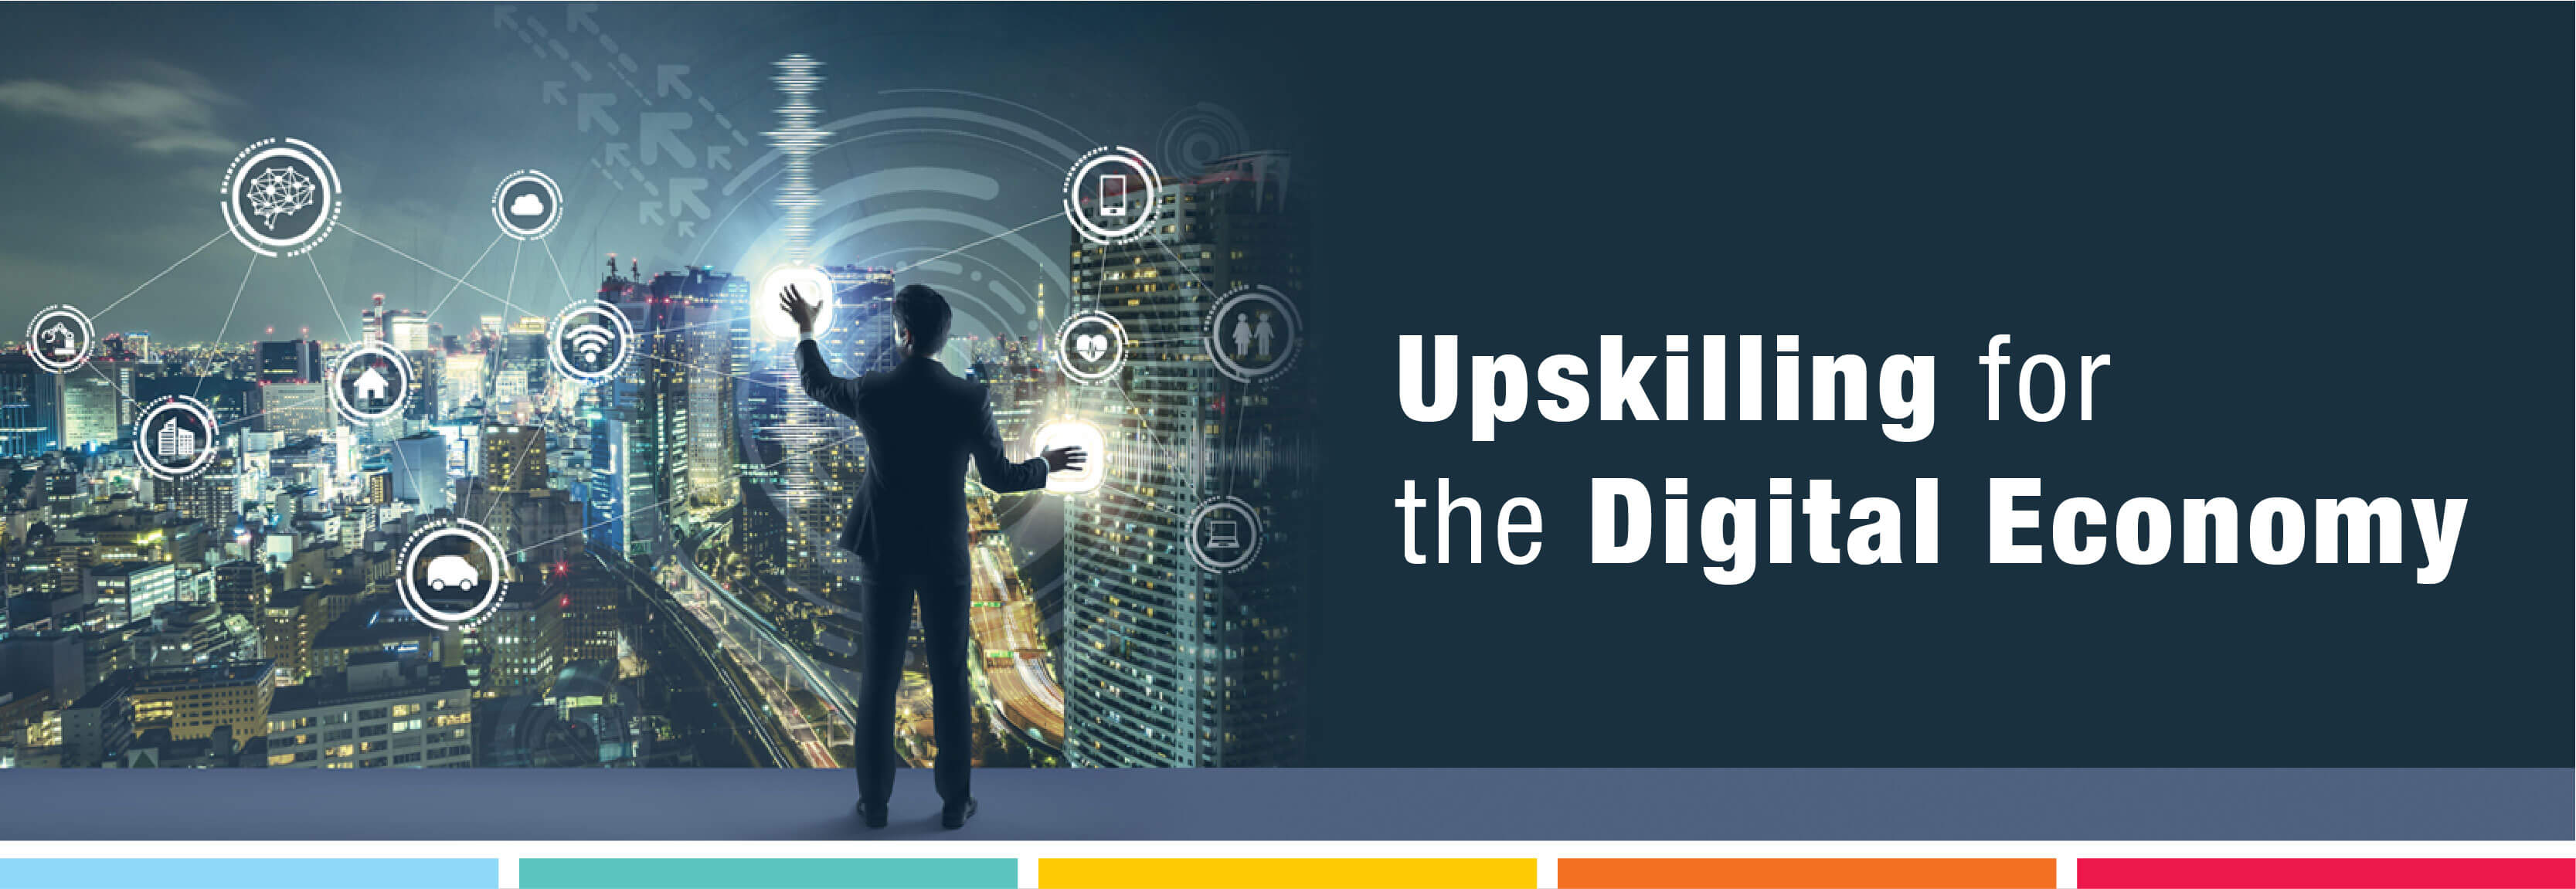 upskilling the digital economy